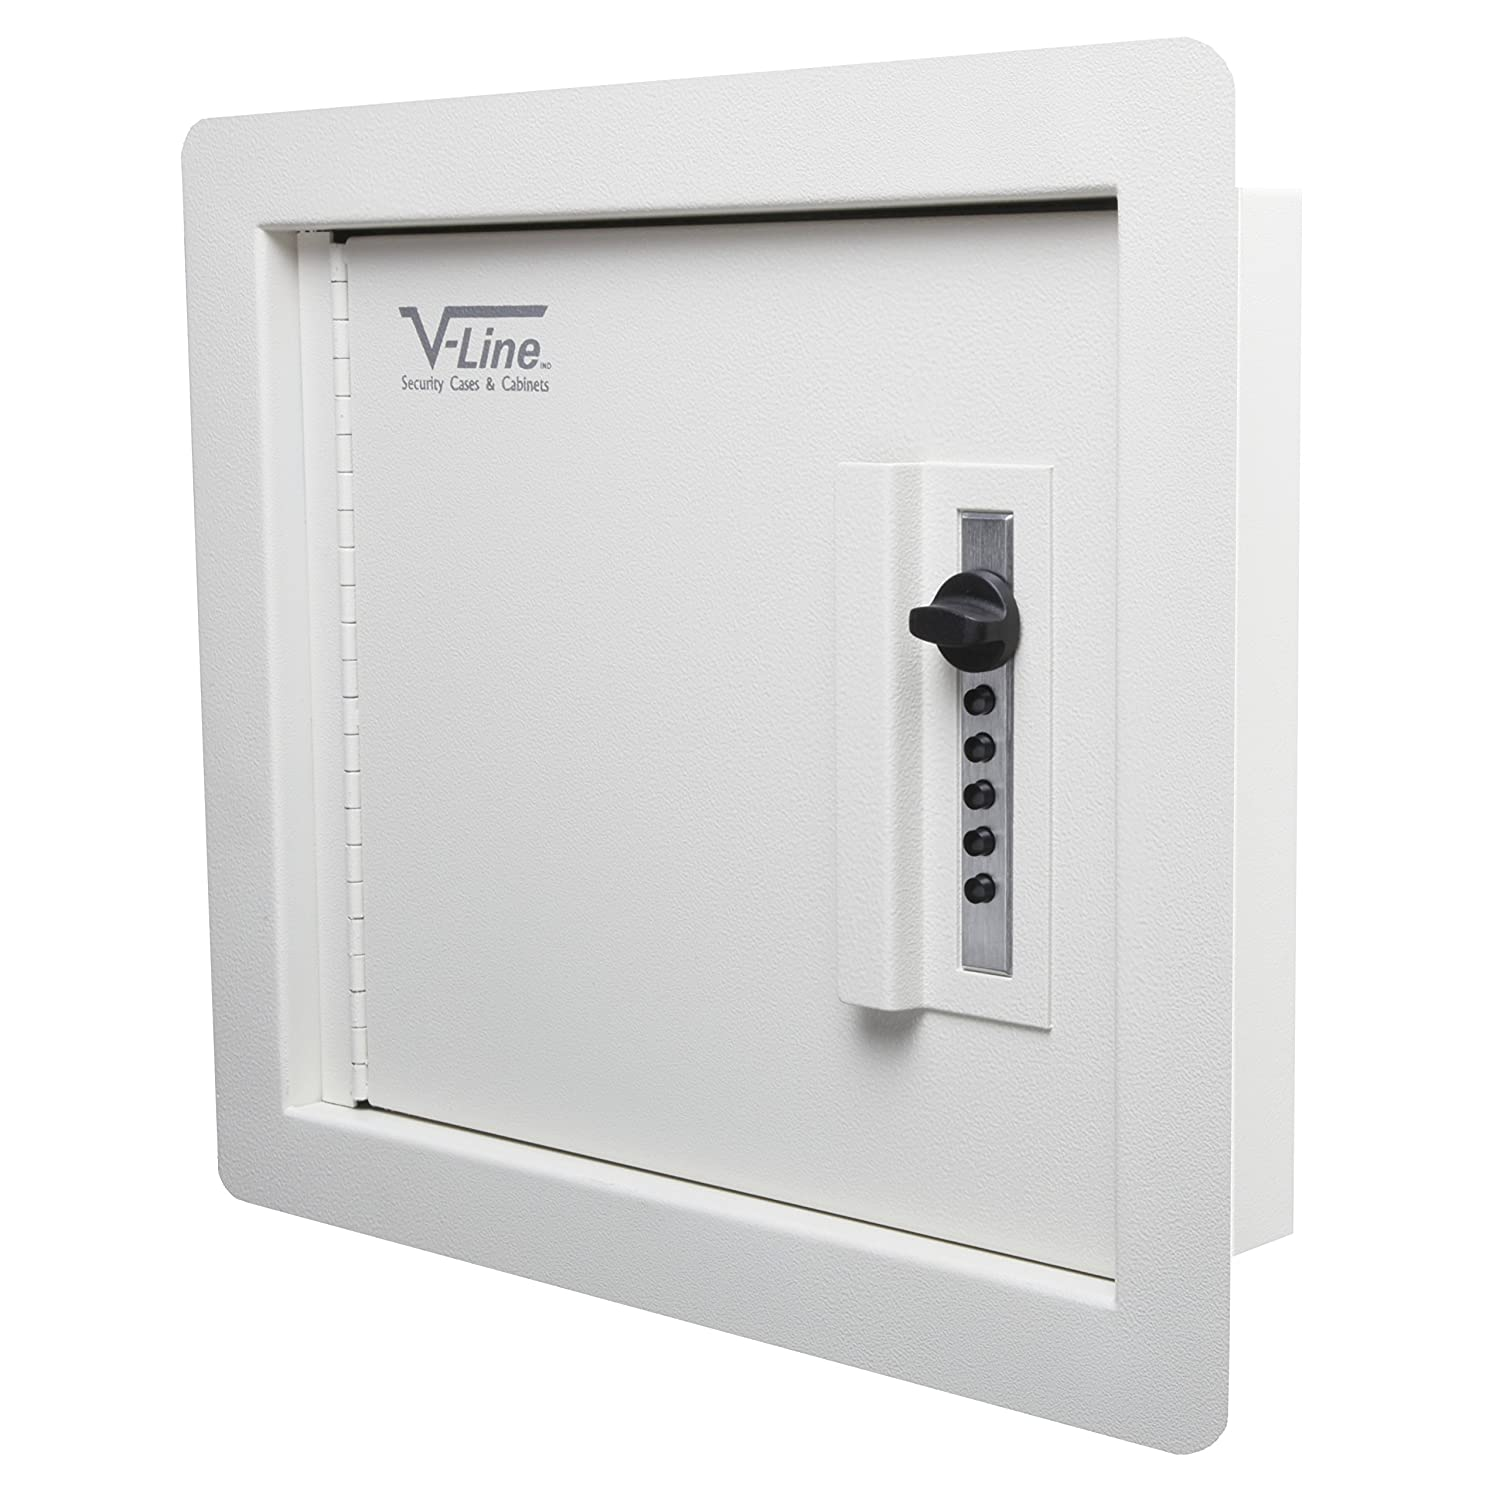 9. V-Line Quick Vault Locking Storage for Guns and Valuables